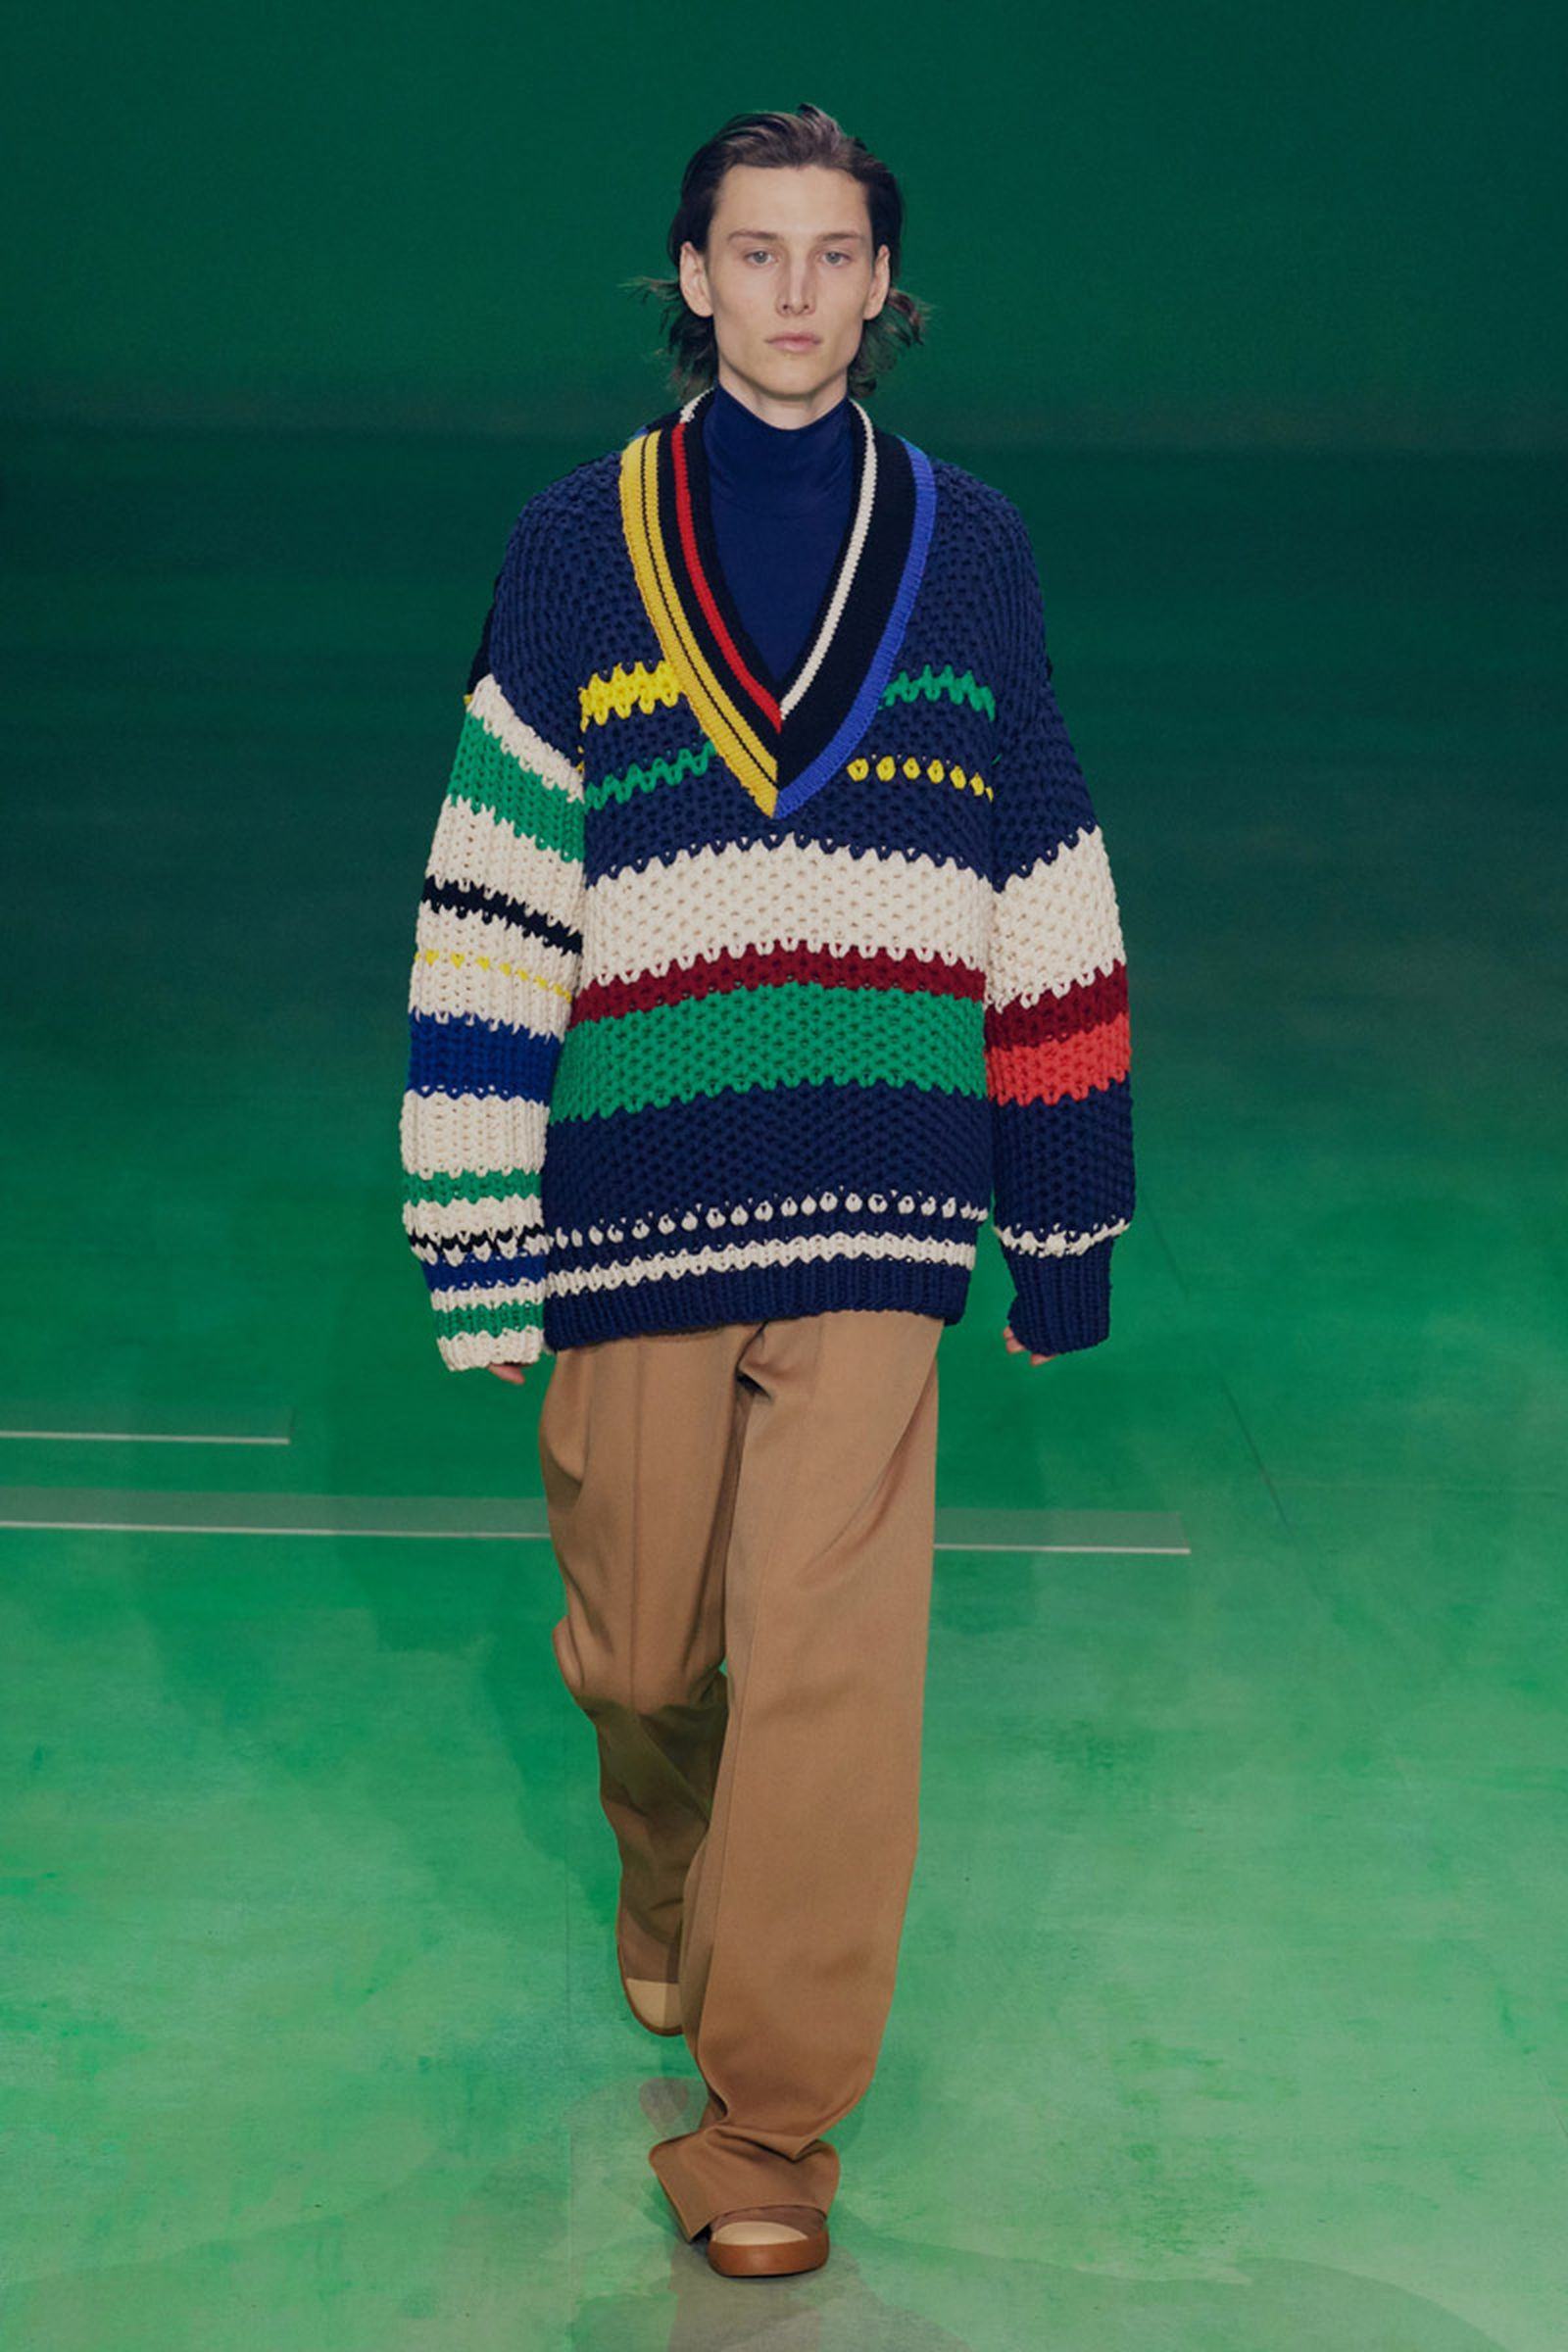 lacoste fw19 pfw Louise Trotter runway